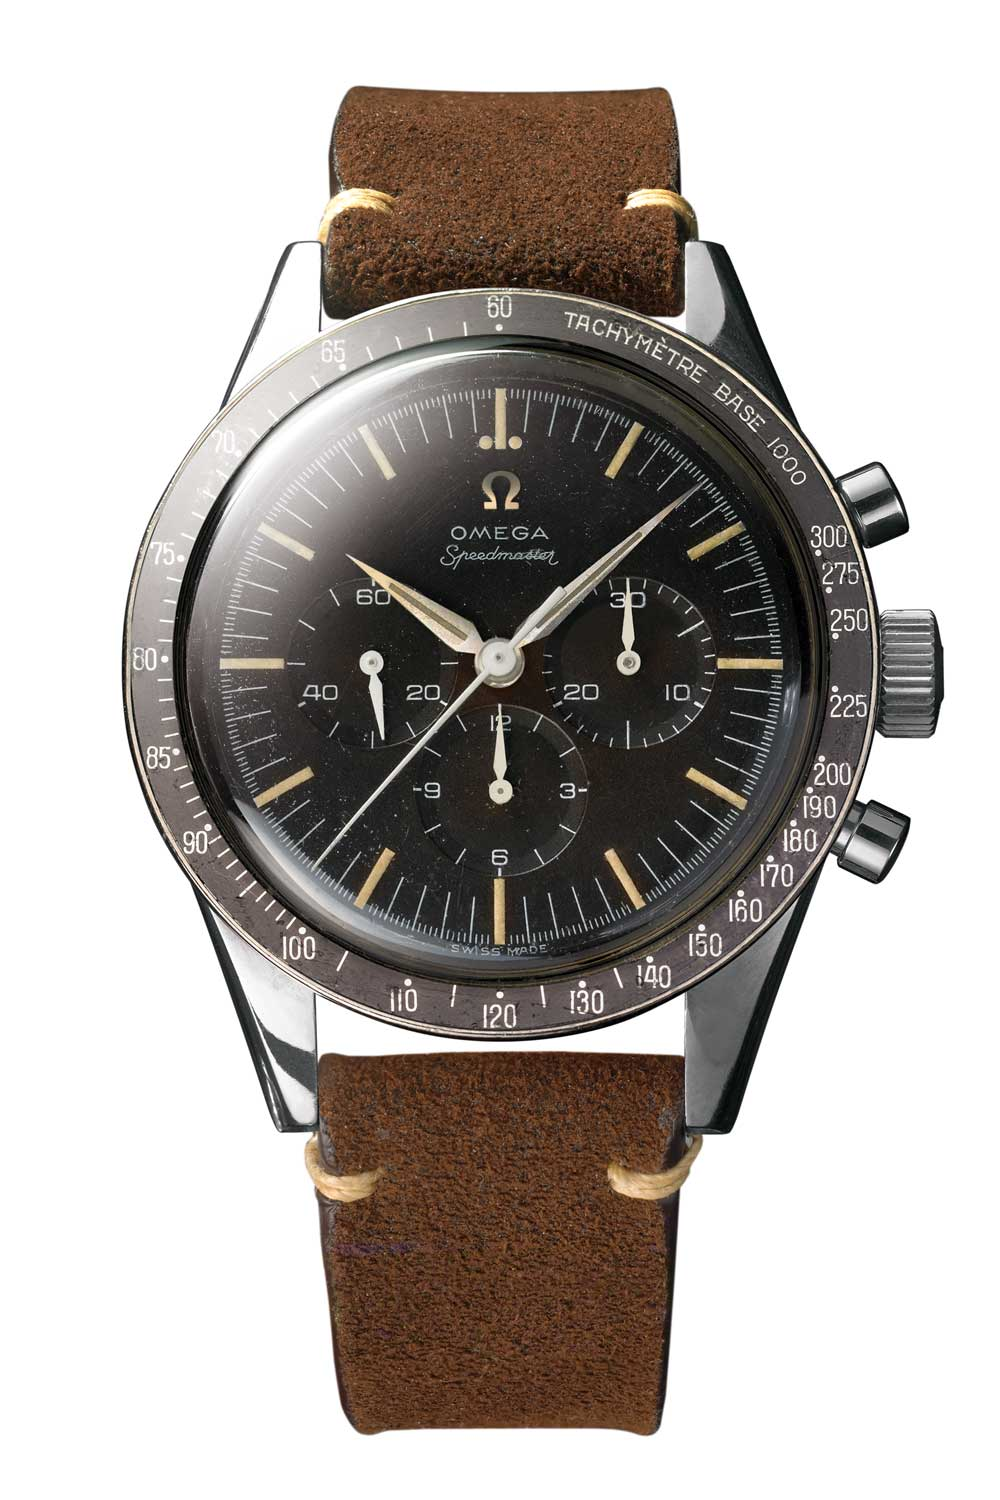 The CK2998, the first Omega Speedmaster in space, was a personal watch belonging to Walter Schirra, and not tested by Ragan and NASA beforehand